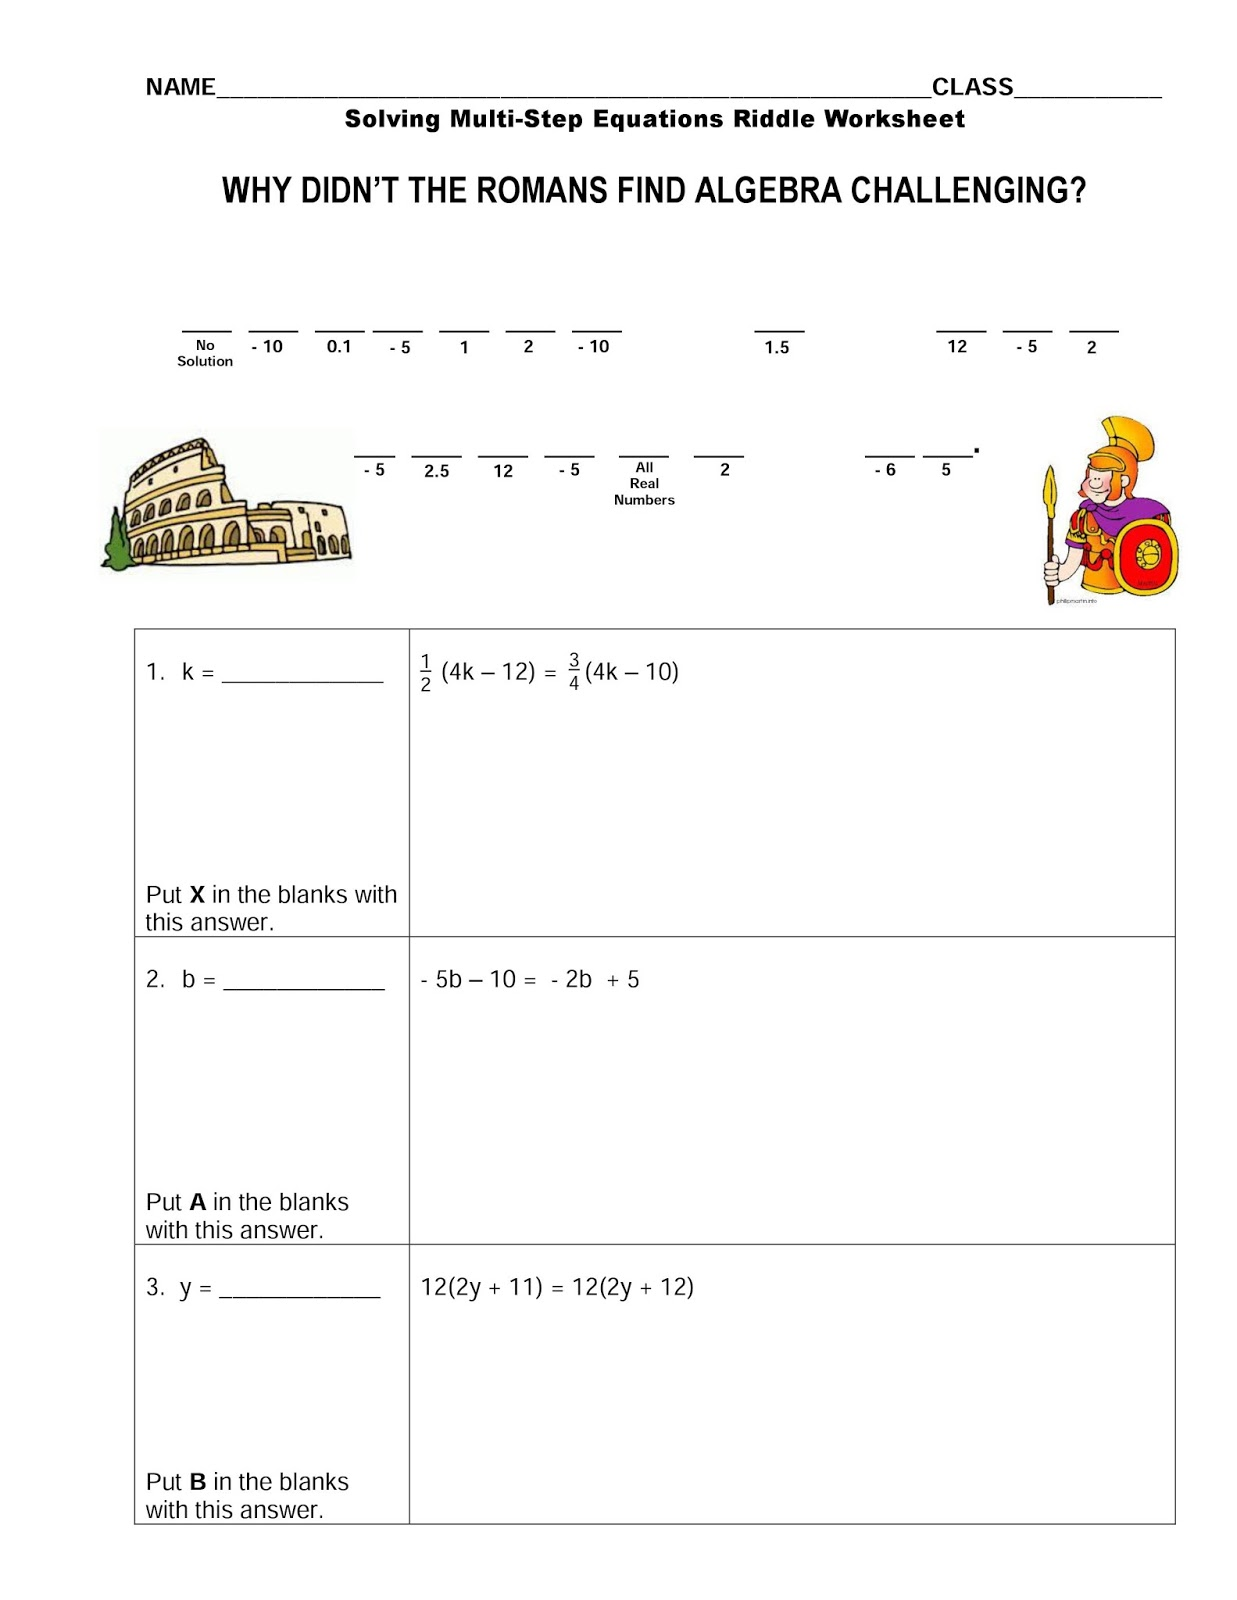 worksheet Equations Puzzle Worksheet solving equations flipbook mrs newells math overall students were re familarized with multi step in 2 days after that we started algebraic properties of equality and introdu